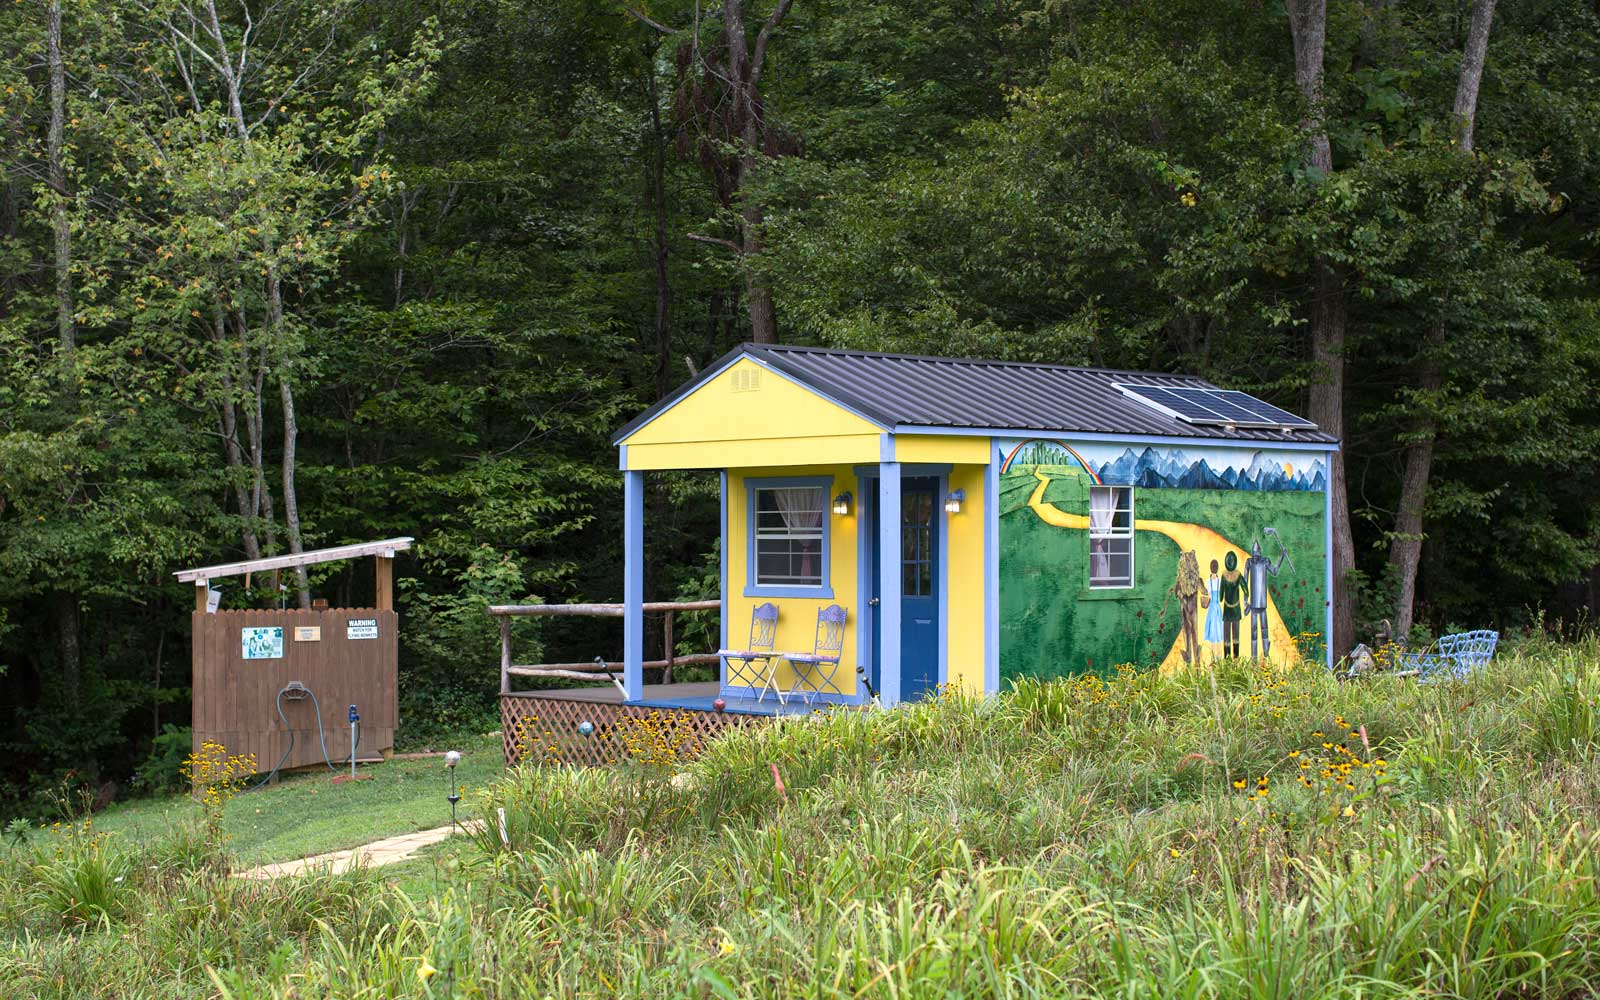 This 'Wizard of Oz' Airbnb in North Carolina Is the Most Magical Place Outside of Emerald City